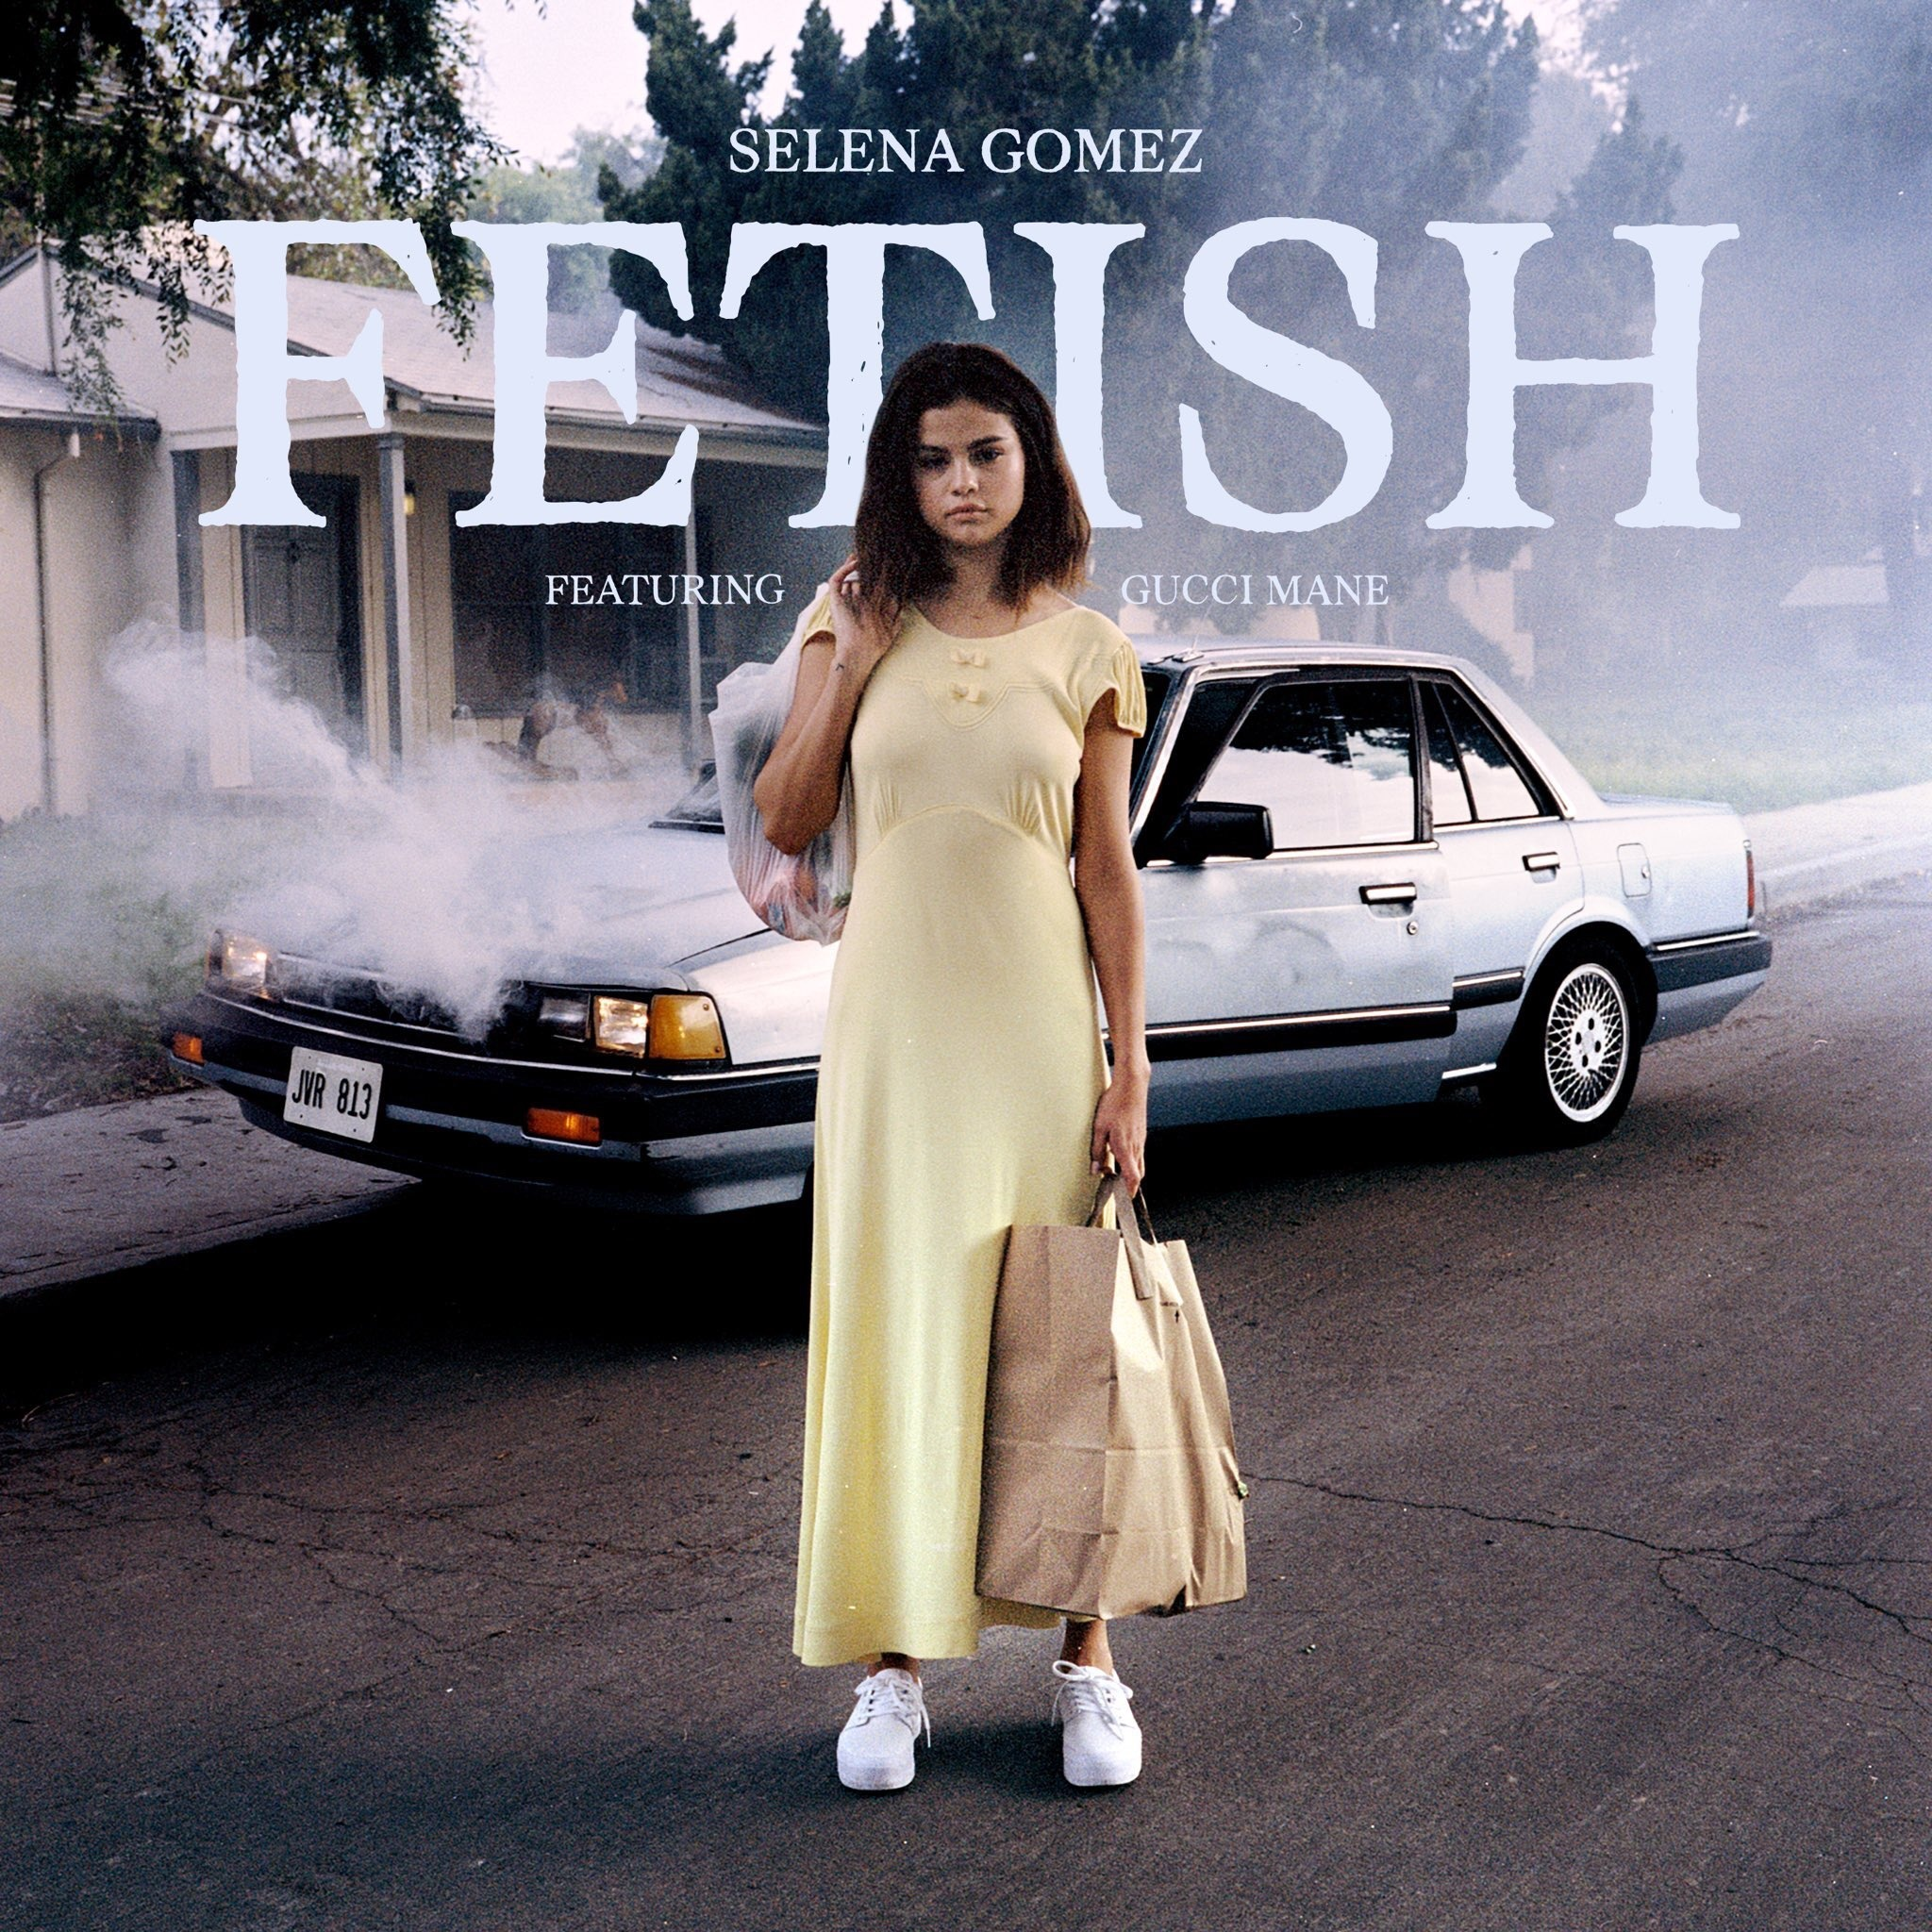 """New video clip """"Fetish"""" of Selena Gomez's new single featuring Gucci Mane  has been released. Music video is directed by Petra Collins."""